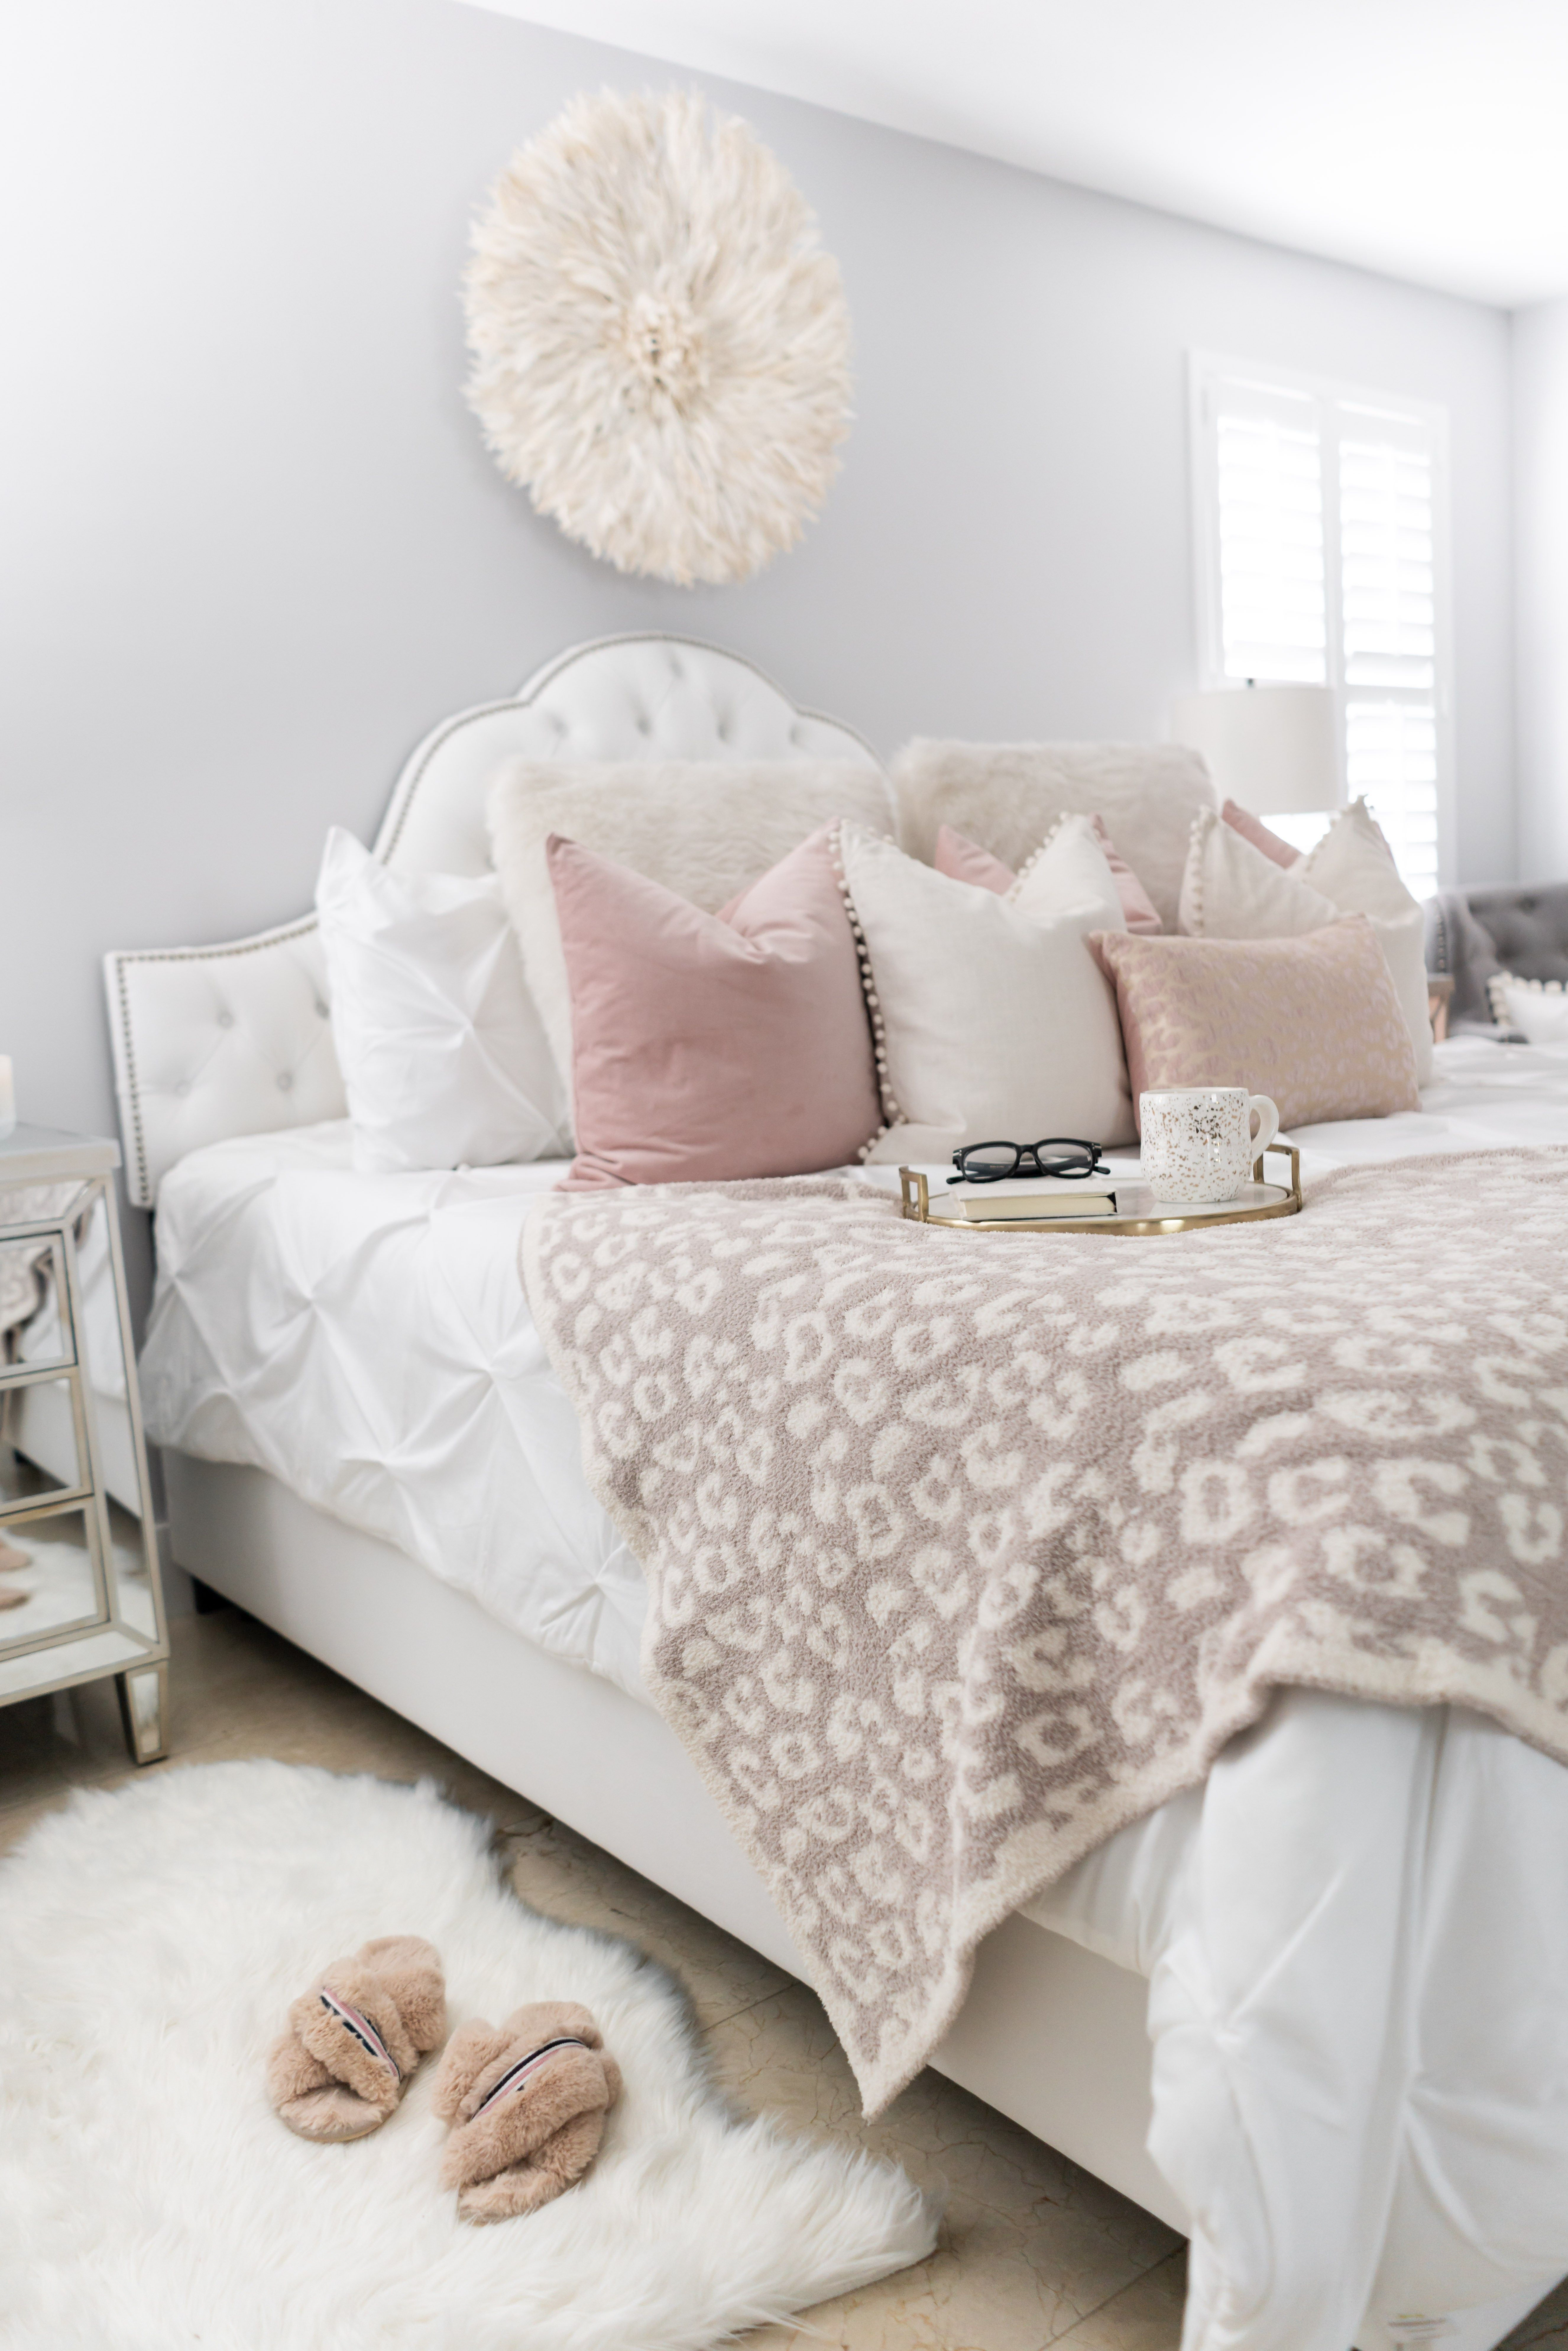 Best How To Make Your Bedroom Cozy My 5 Tips The Home 640 x 480